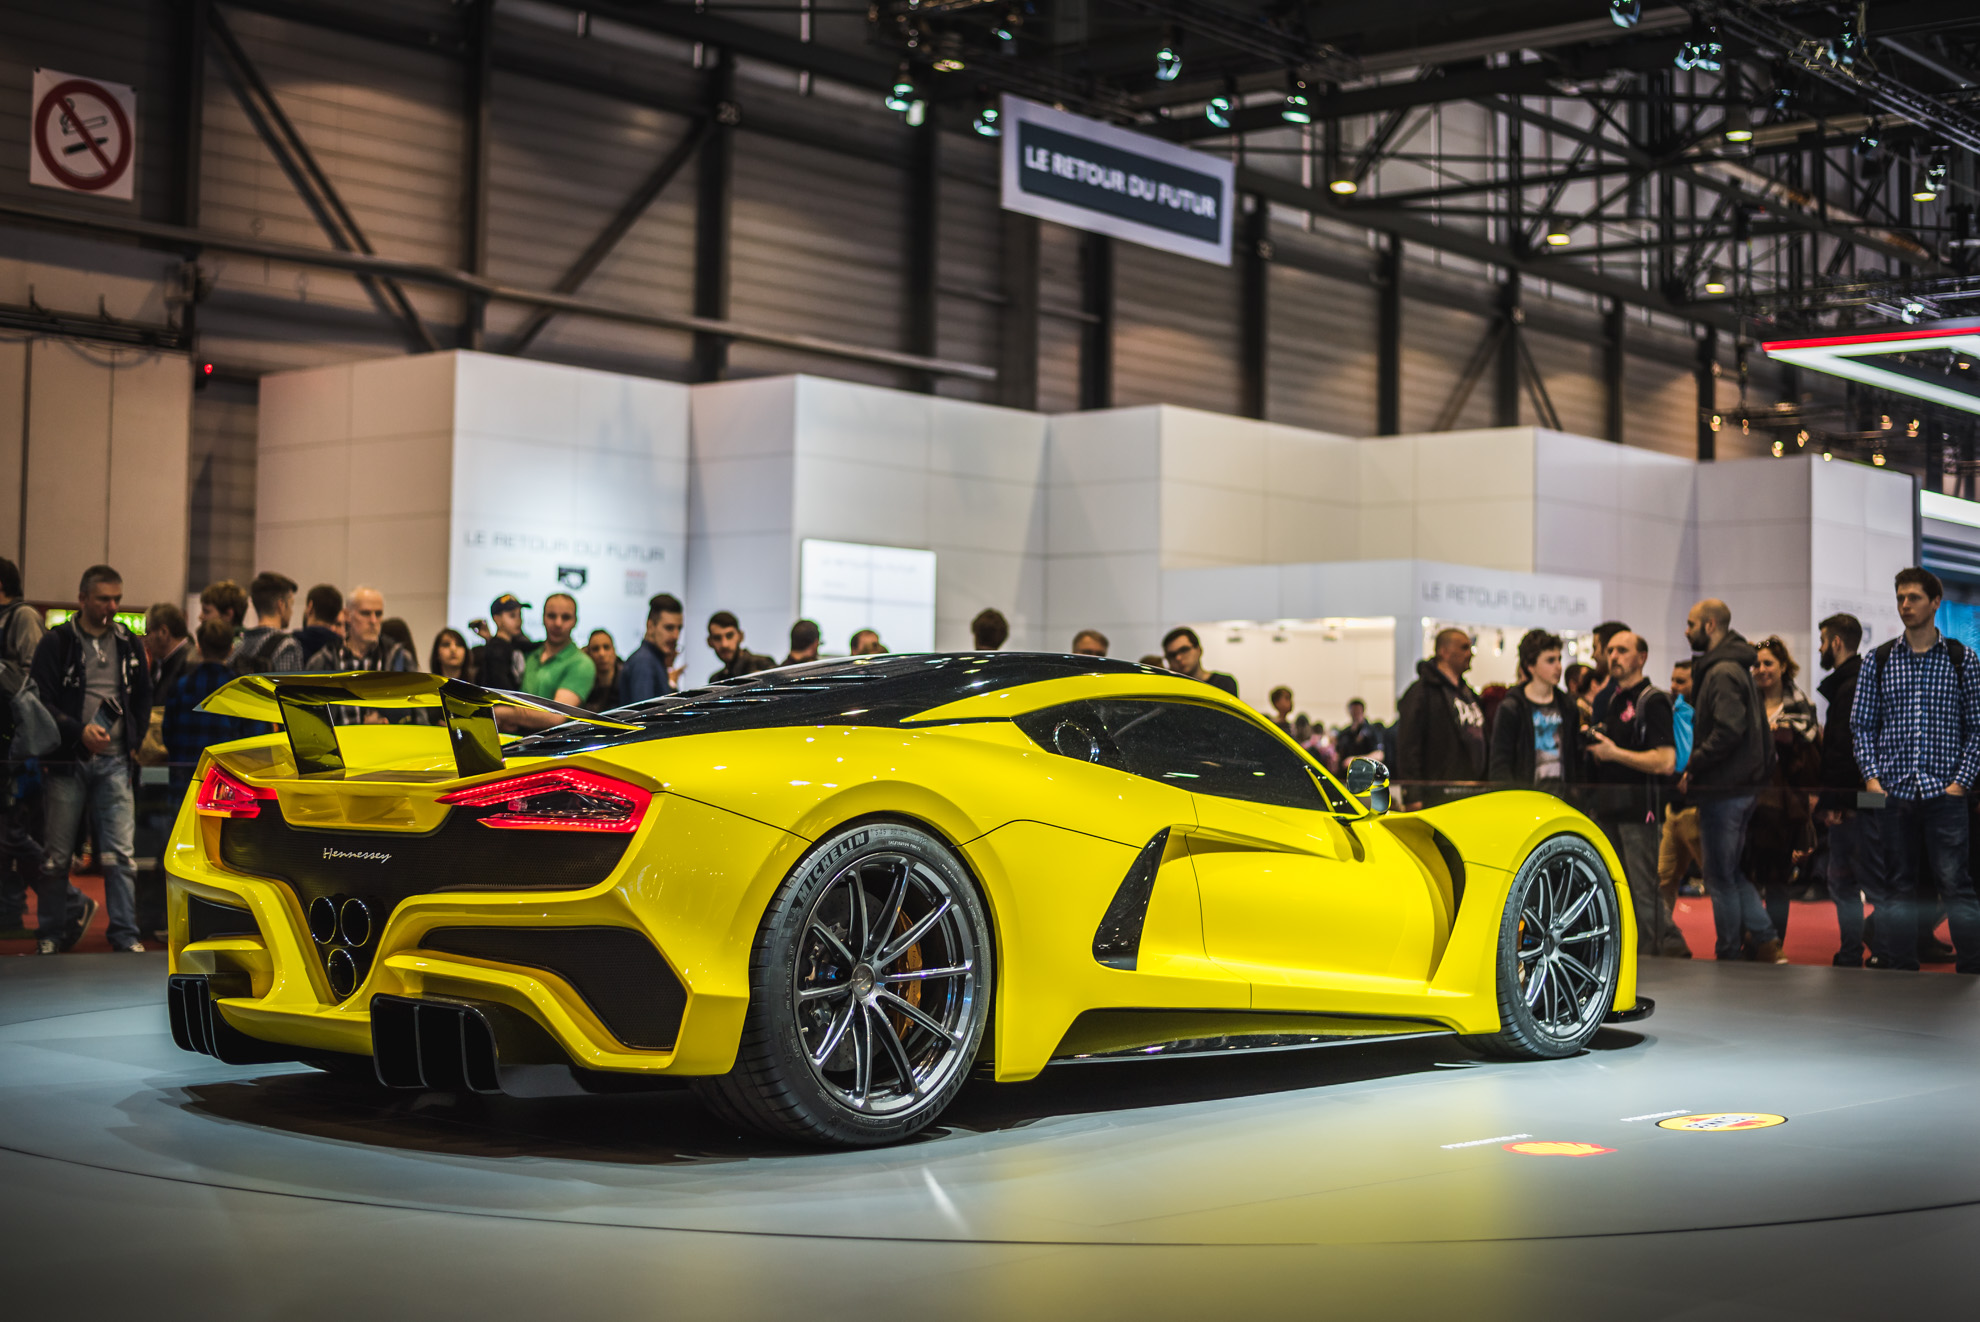 geneva-international-motor-show-igors-sinitsins-37